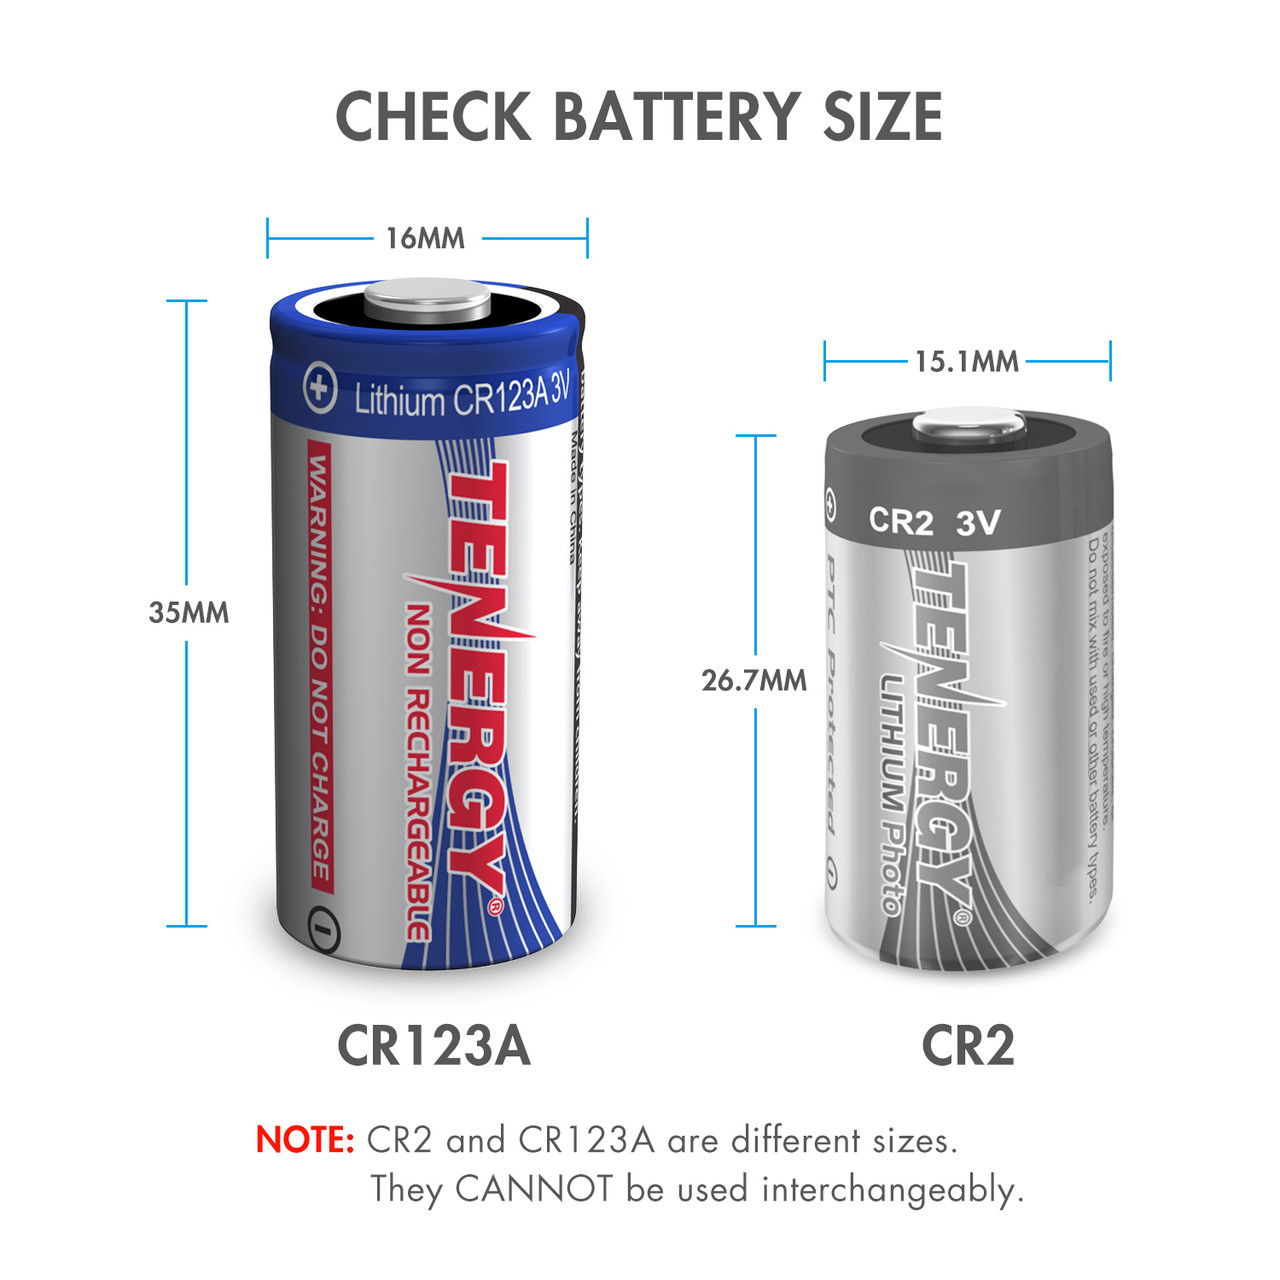 Tenergy Lithium CR123A 3V Non-rechargeable Batteries w/ PTC, 12-pack (1 x Card)